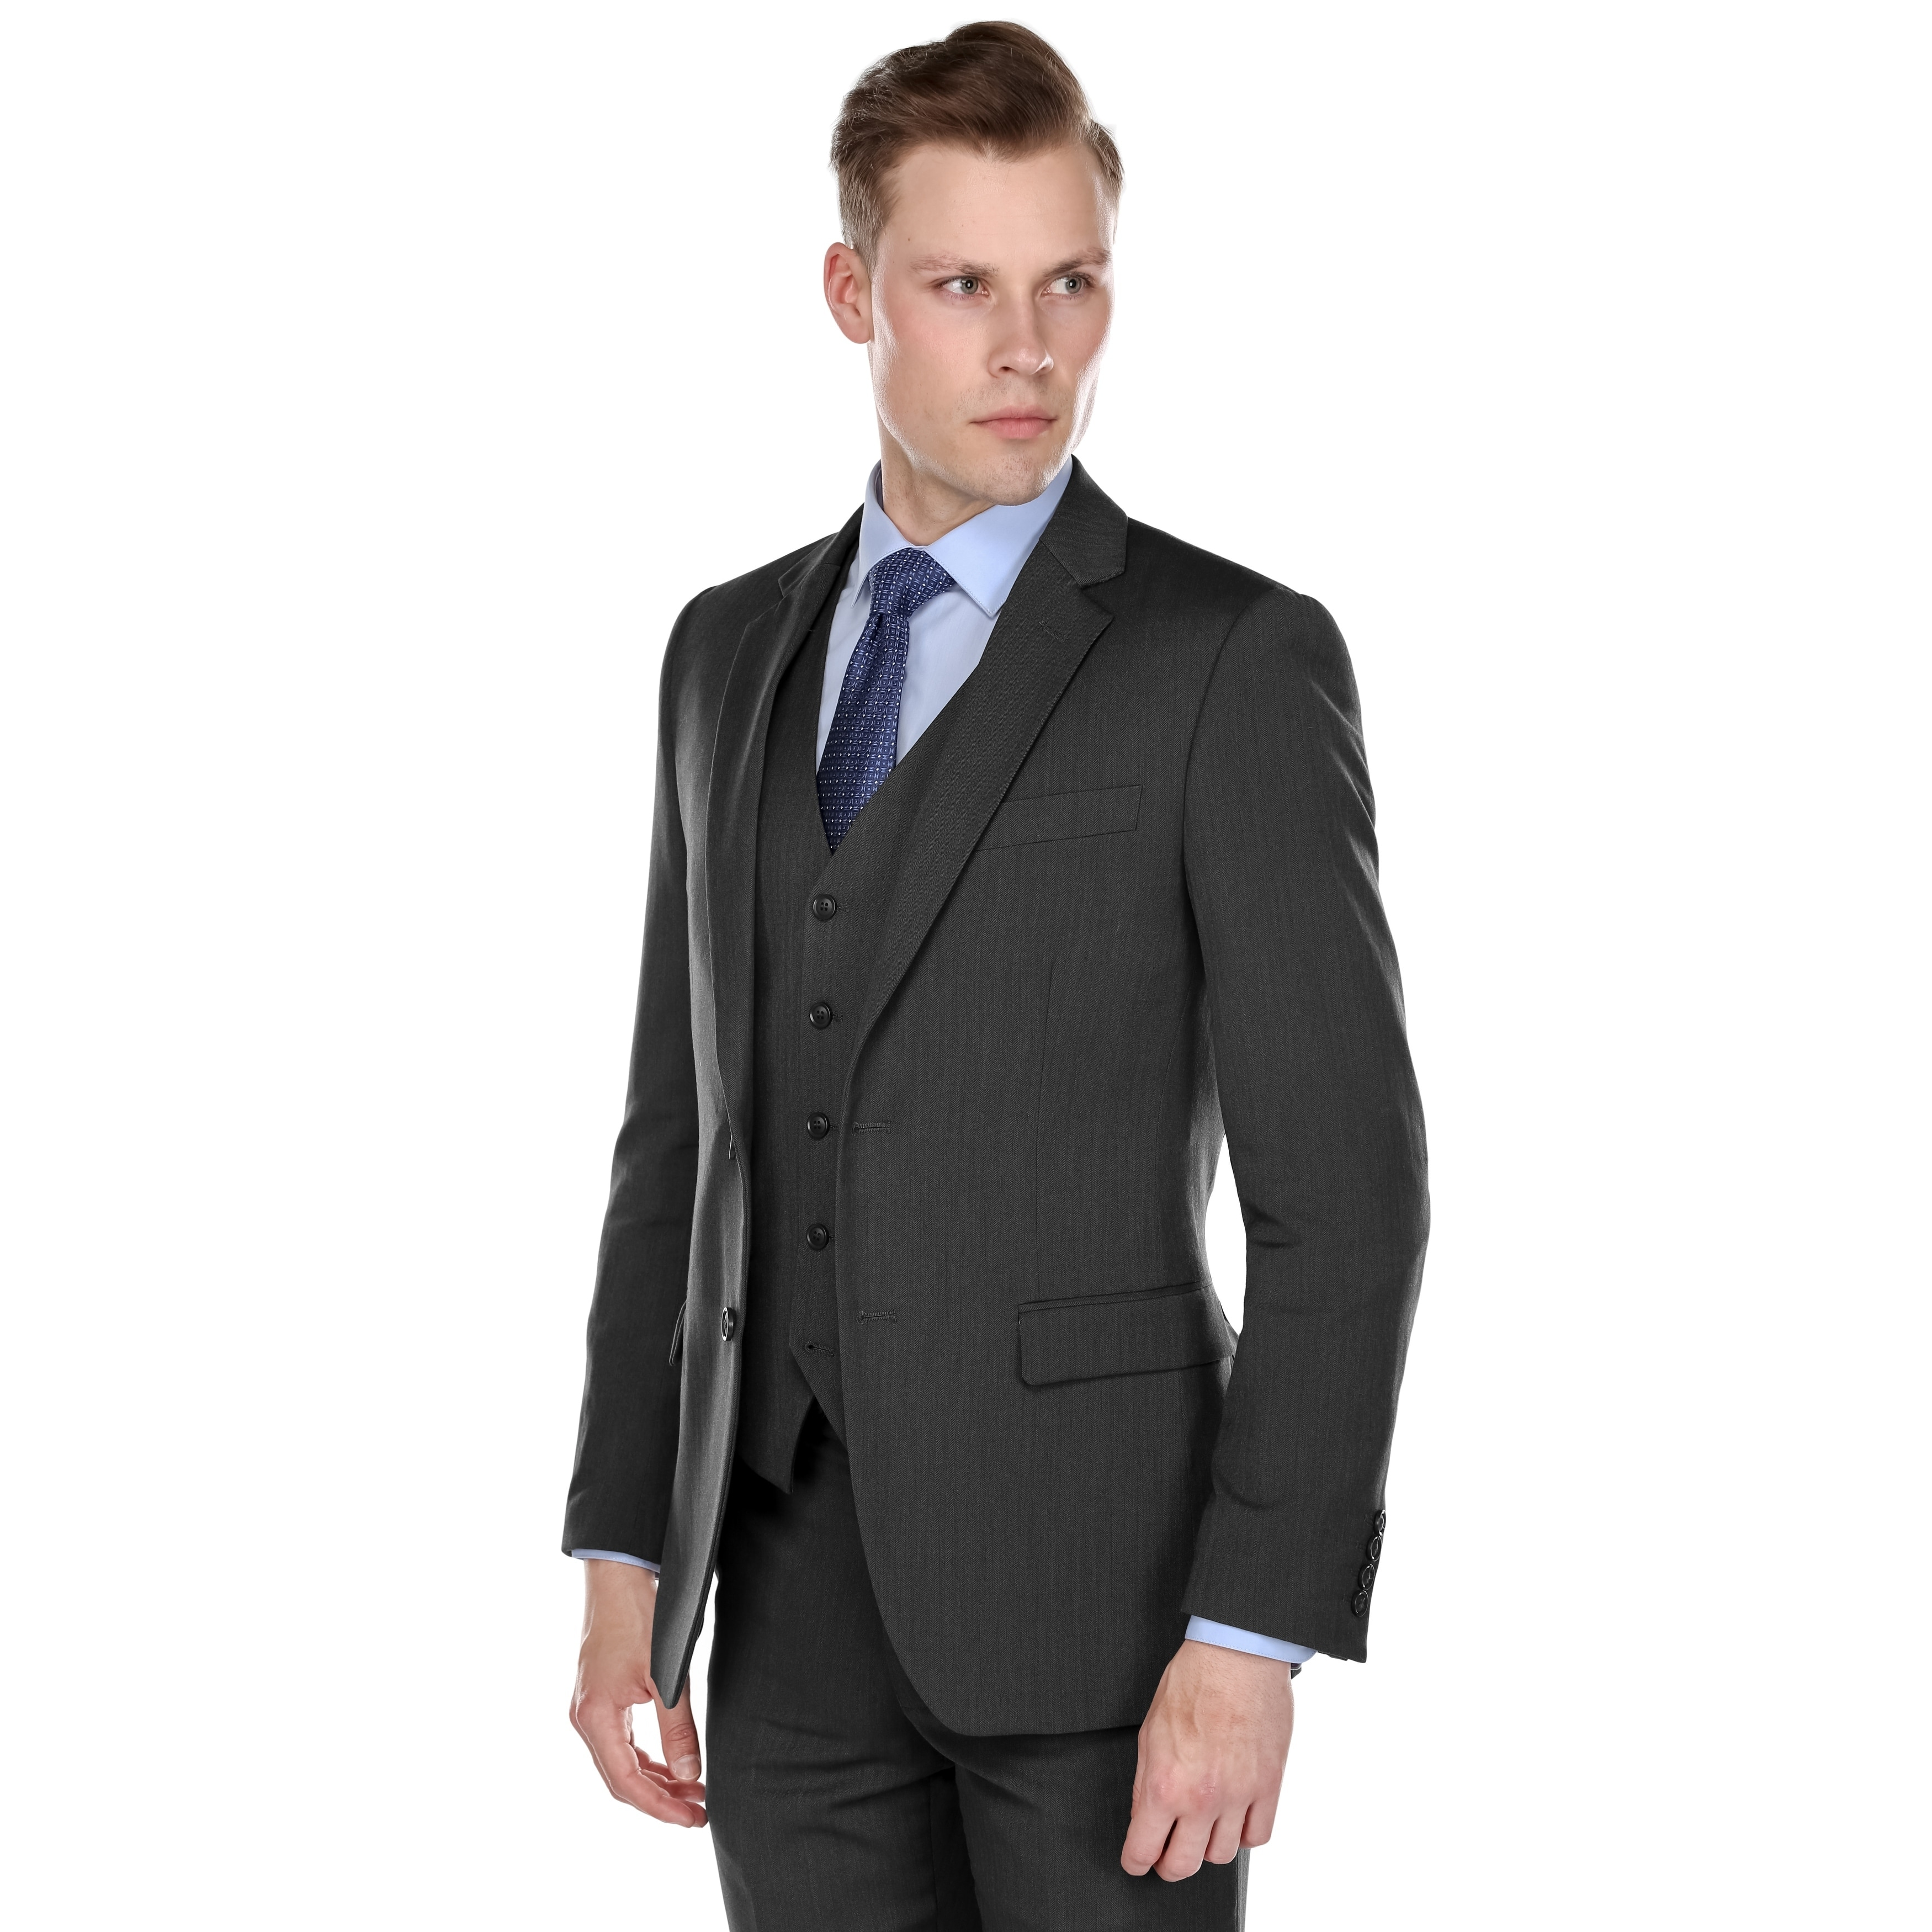 fdc3d420eb3 Shop Fino Uomo Men s Light Herringbone Classic fit 3pc Suits - On Sale - Free  Shipping Today - Overstock - 21794249